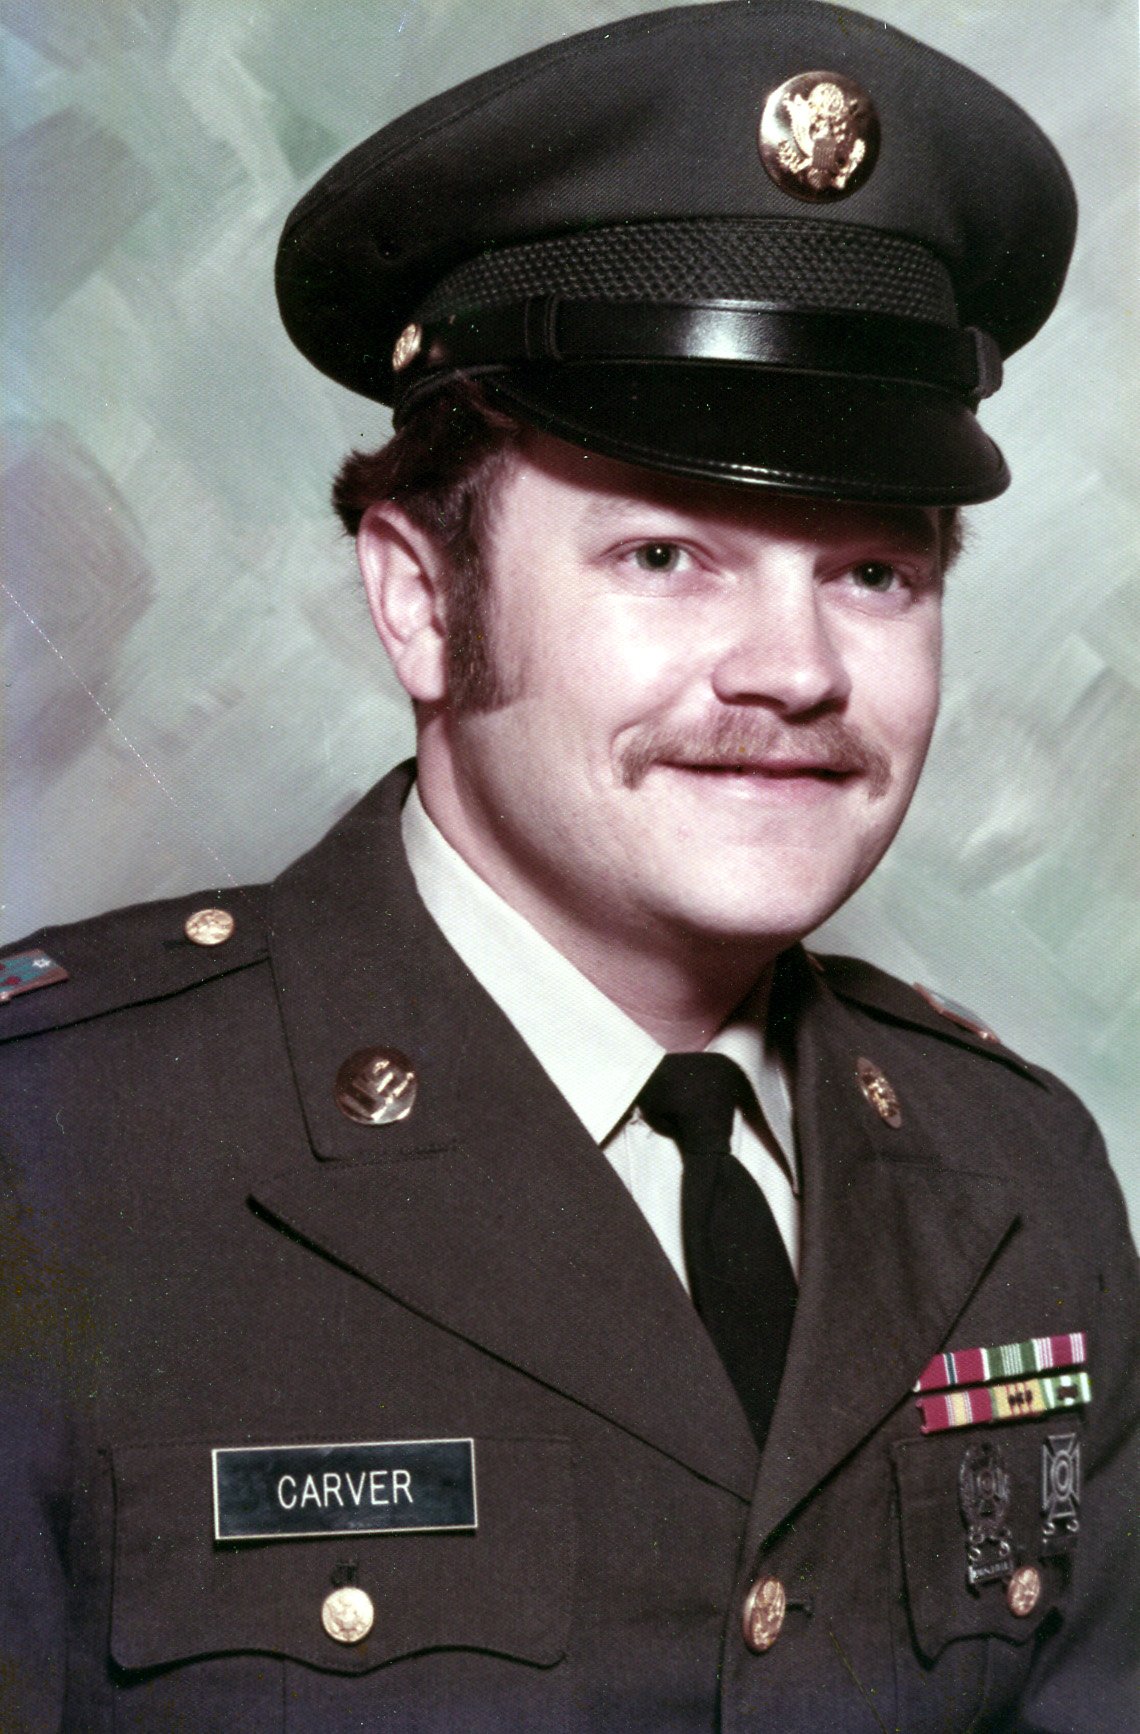 Spec 5 Roger Carver, Army Security Agency, 1971